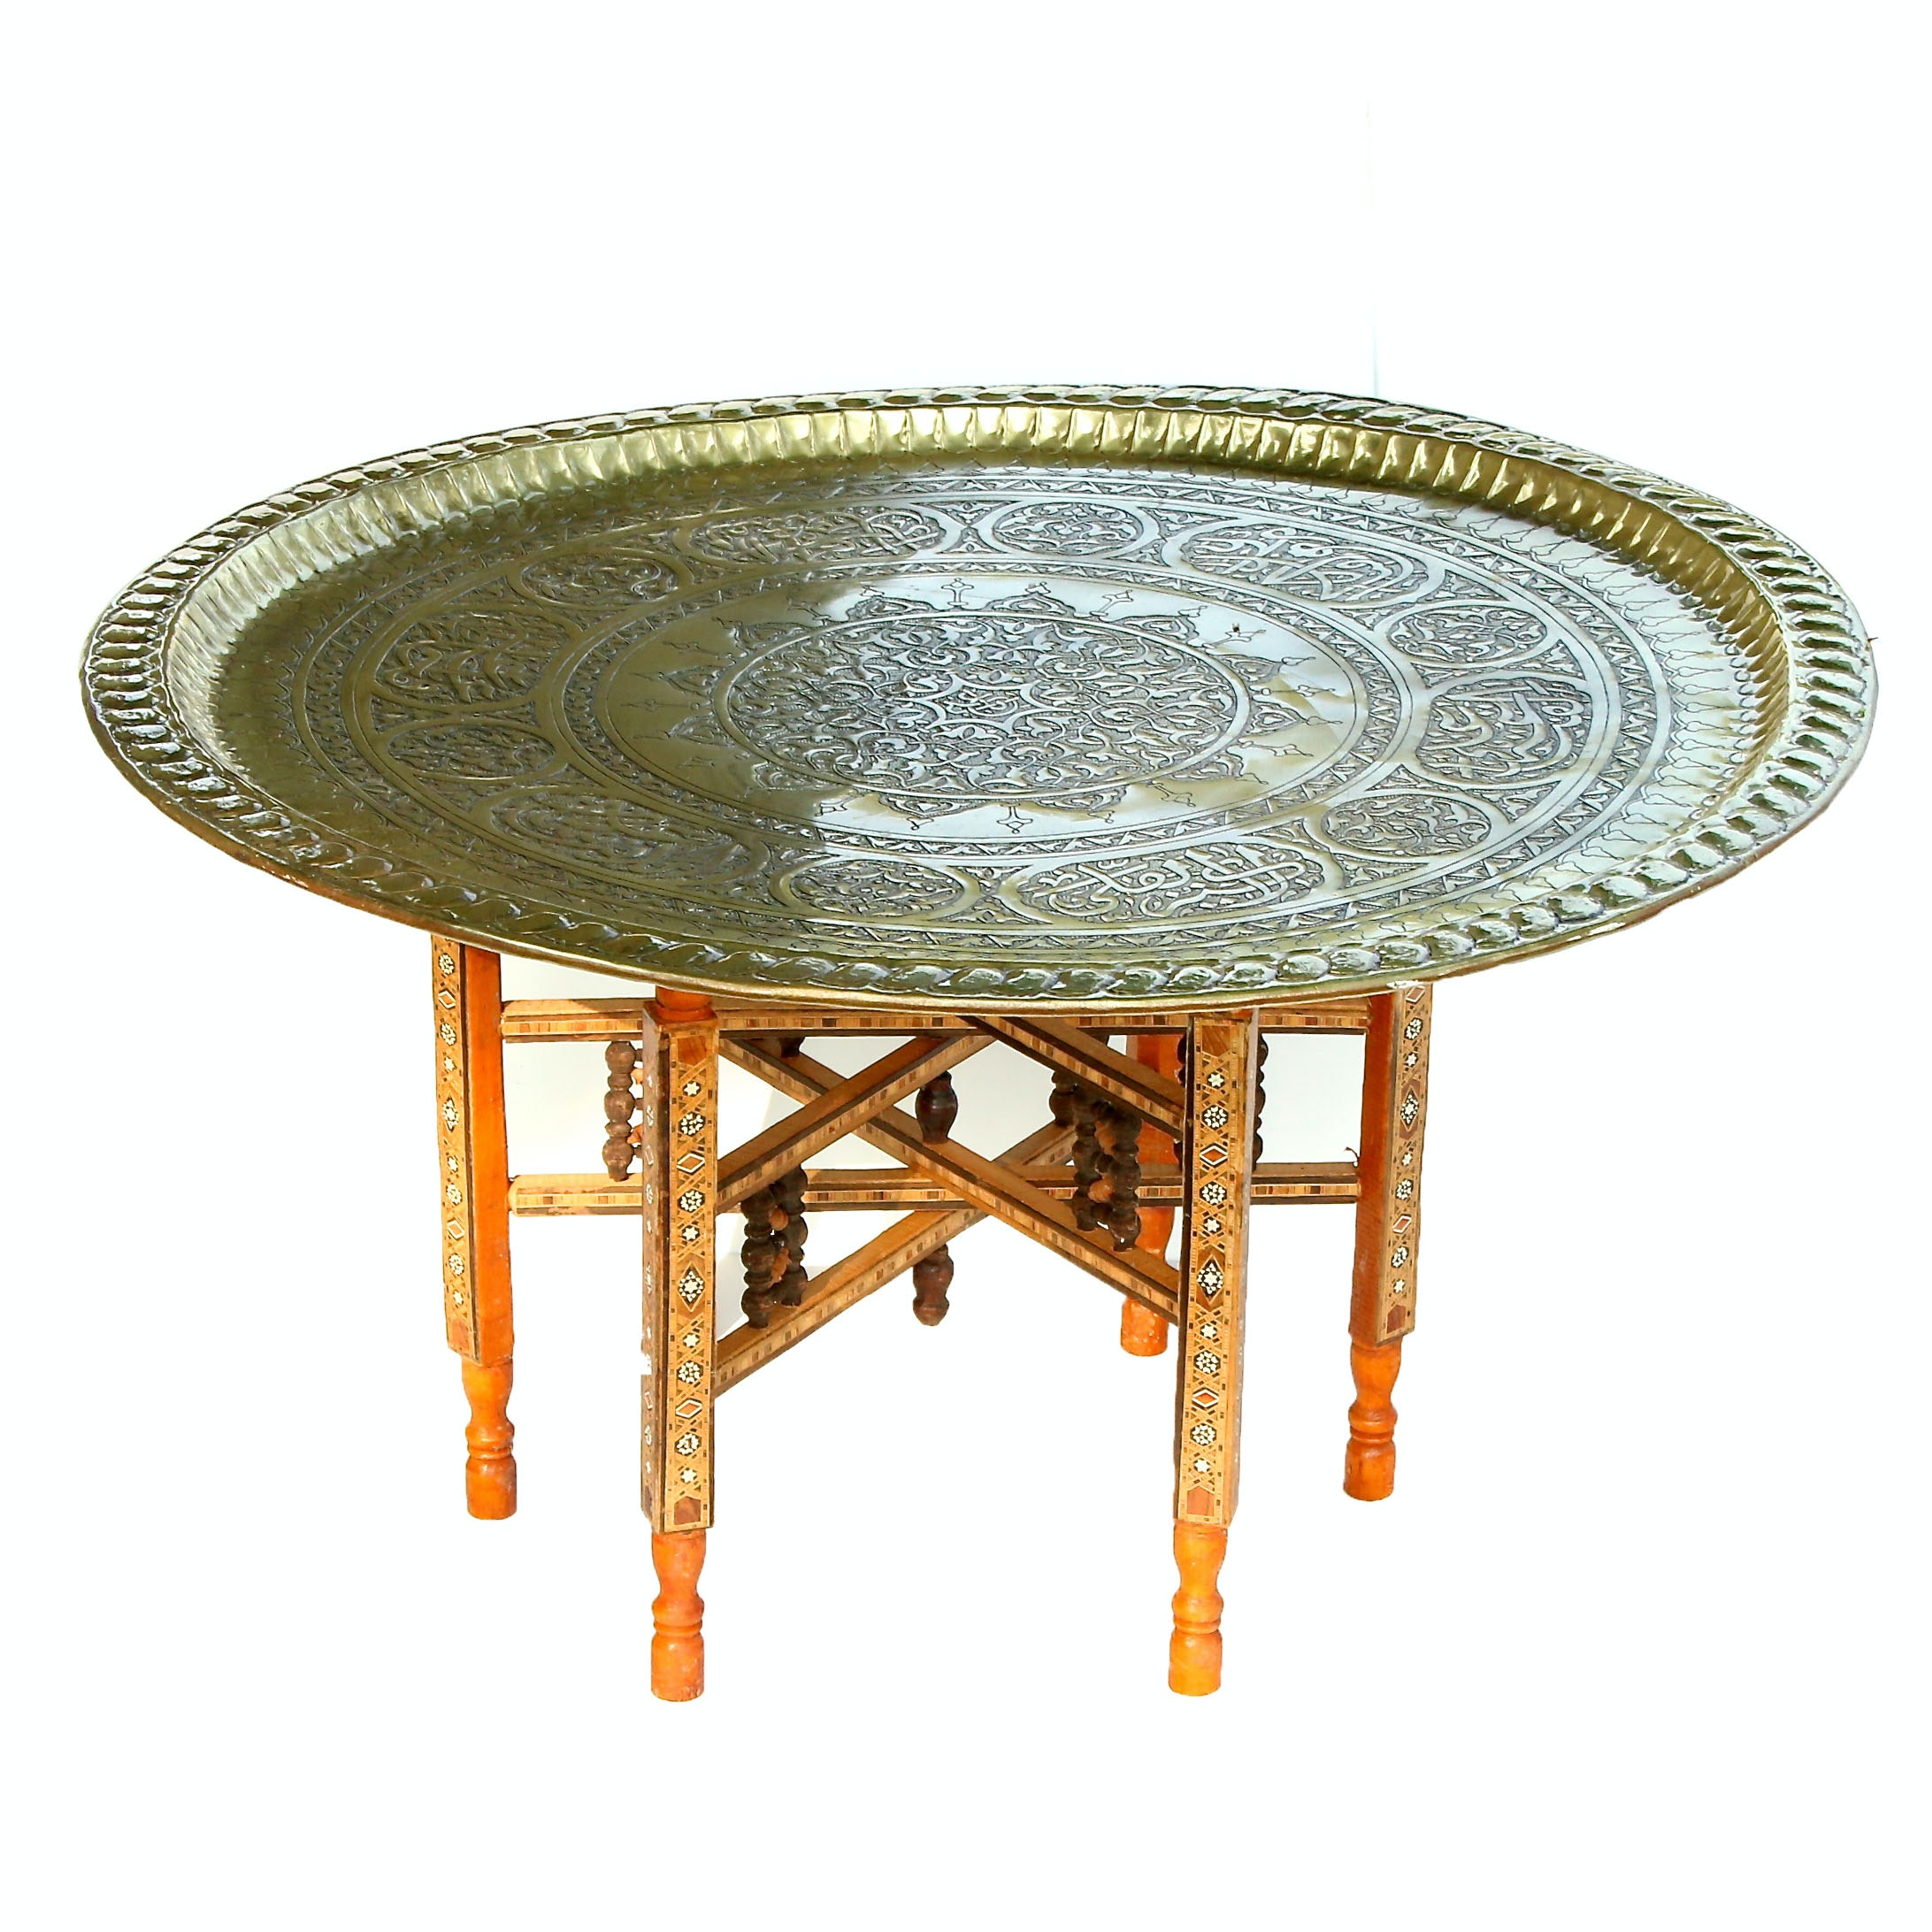 Moroccan Inlay Tray Table with Brass Tray